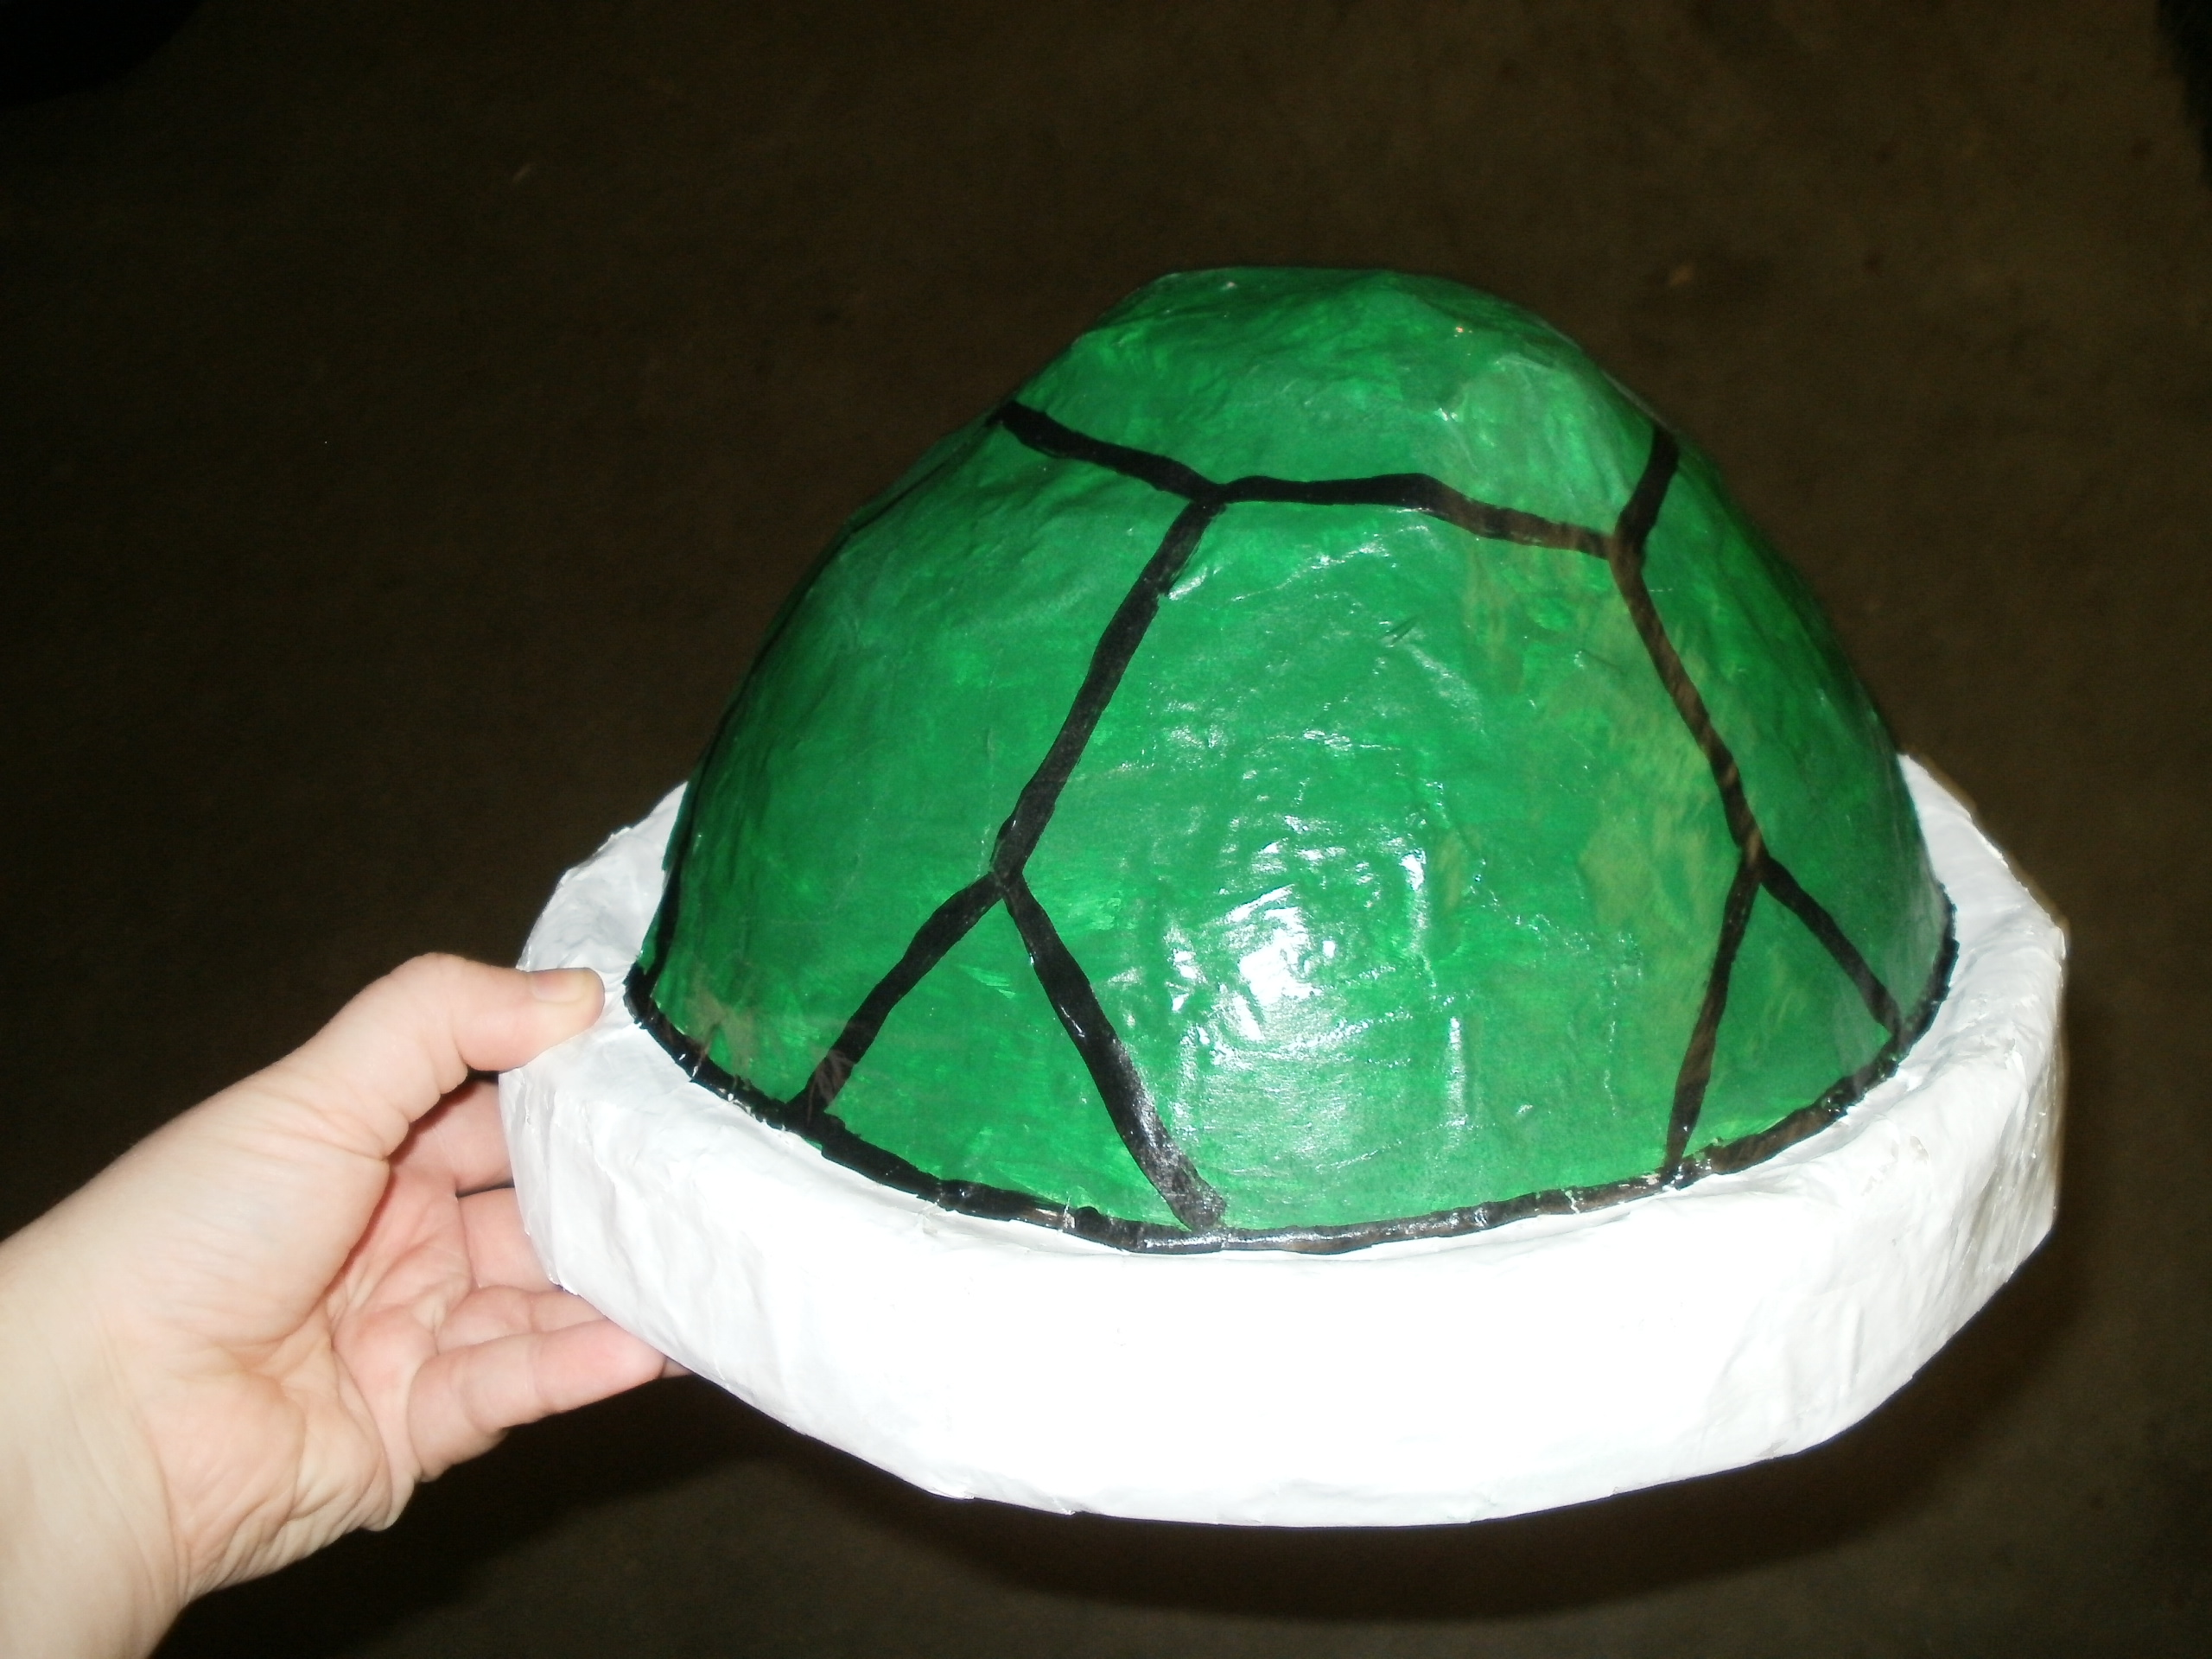 Super Mario Brother's Turtle Shell